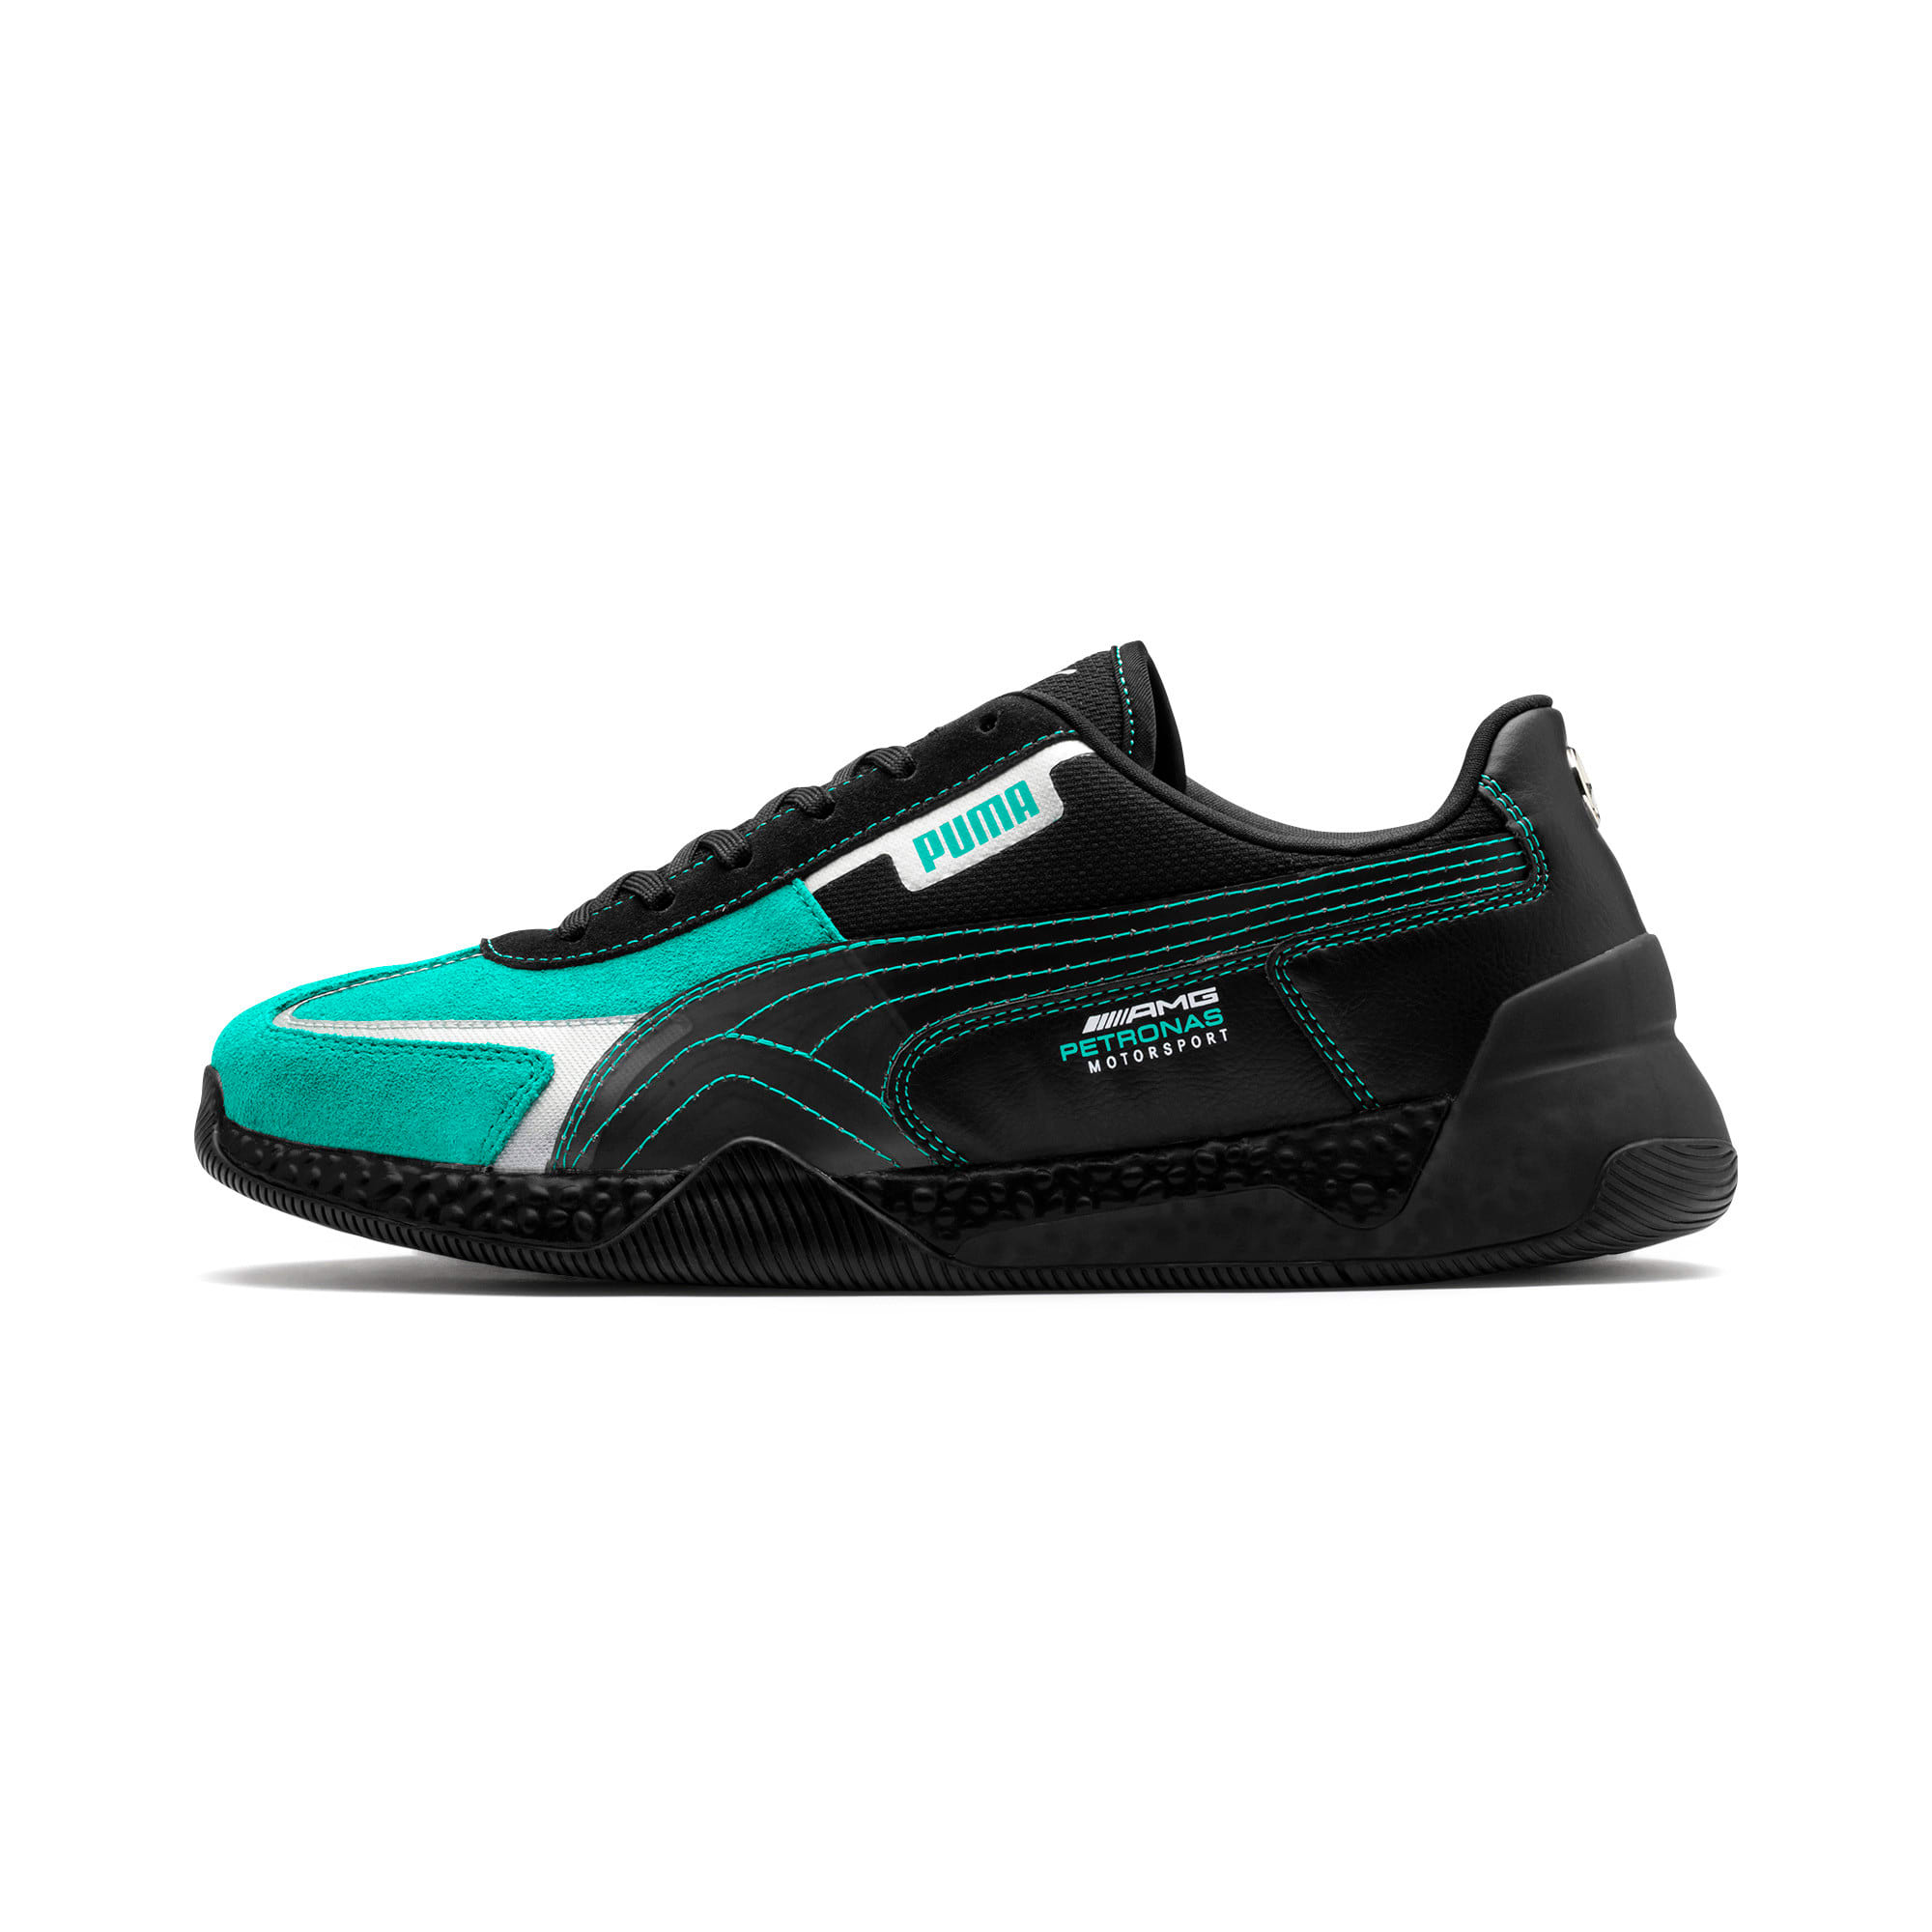 Thumbnail 1 of Mercedes AMG Petronas Speed HYBRID Running Shoes, Puma Black-Spectra Green, medium